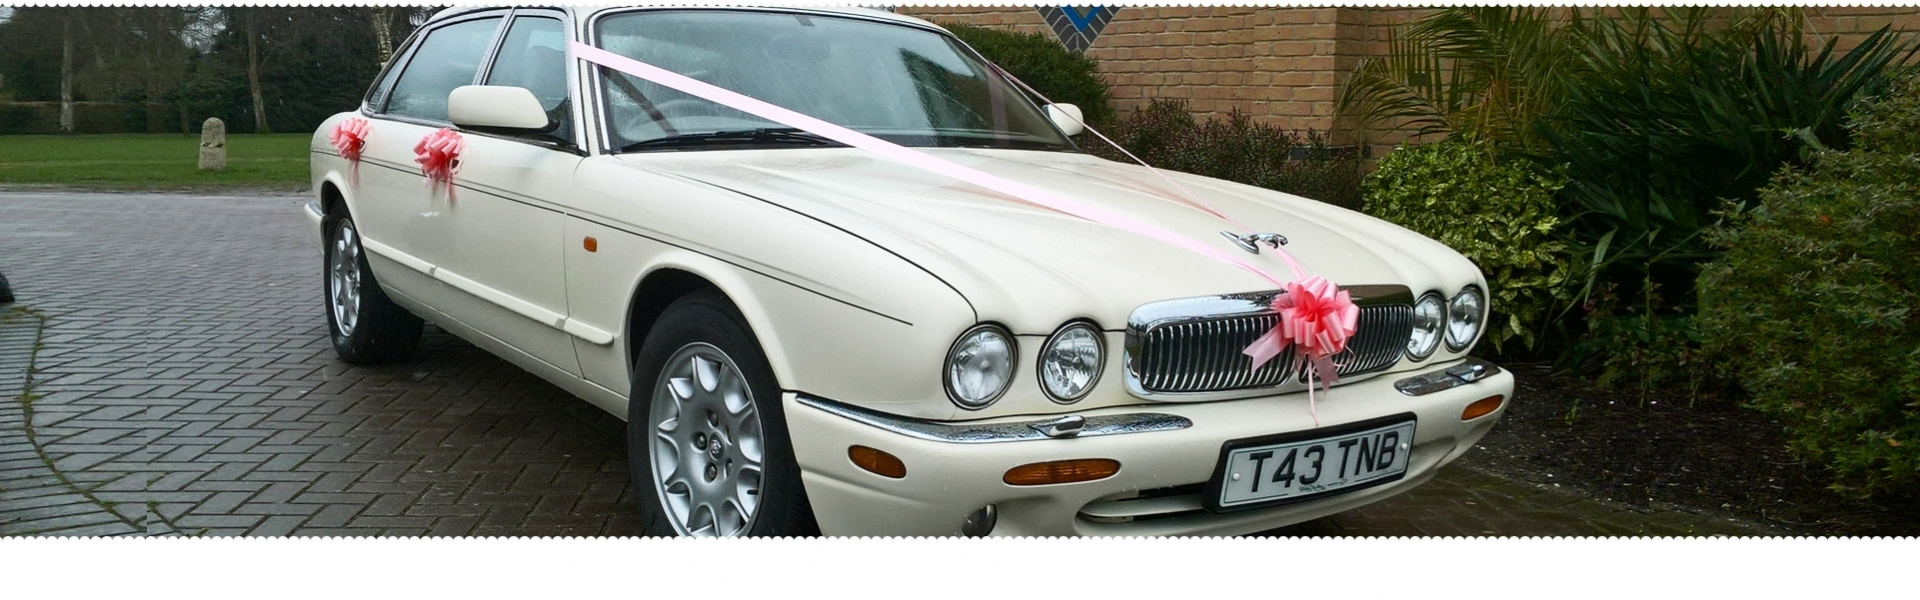 Hi-Profile Limousines and Wedding Cars (@hiprofilelimousineswedding) Cover Image